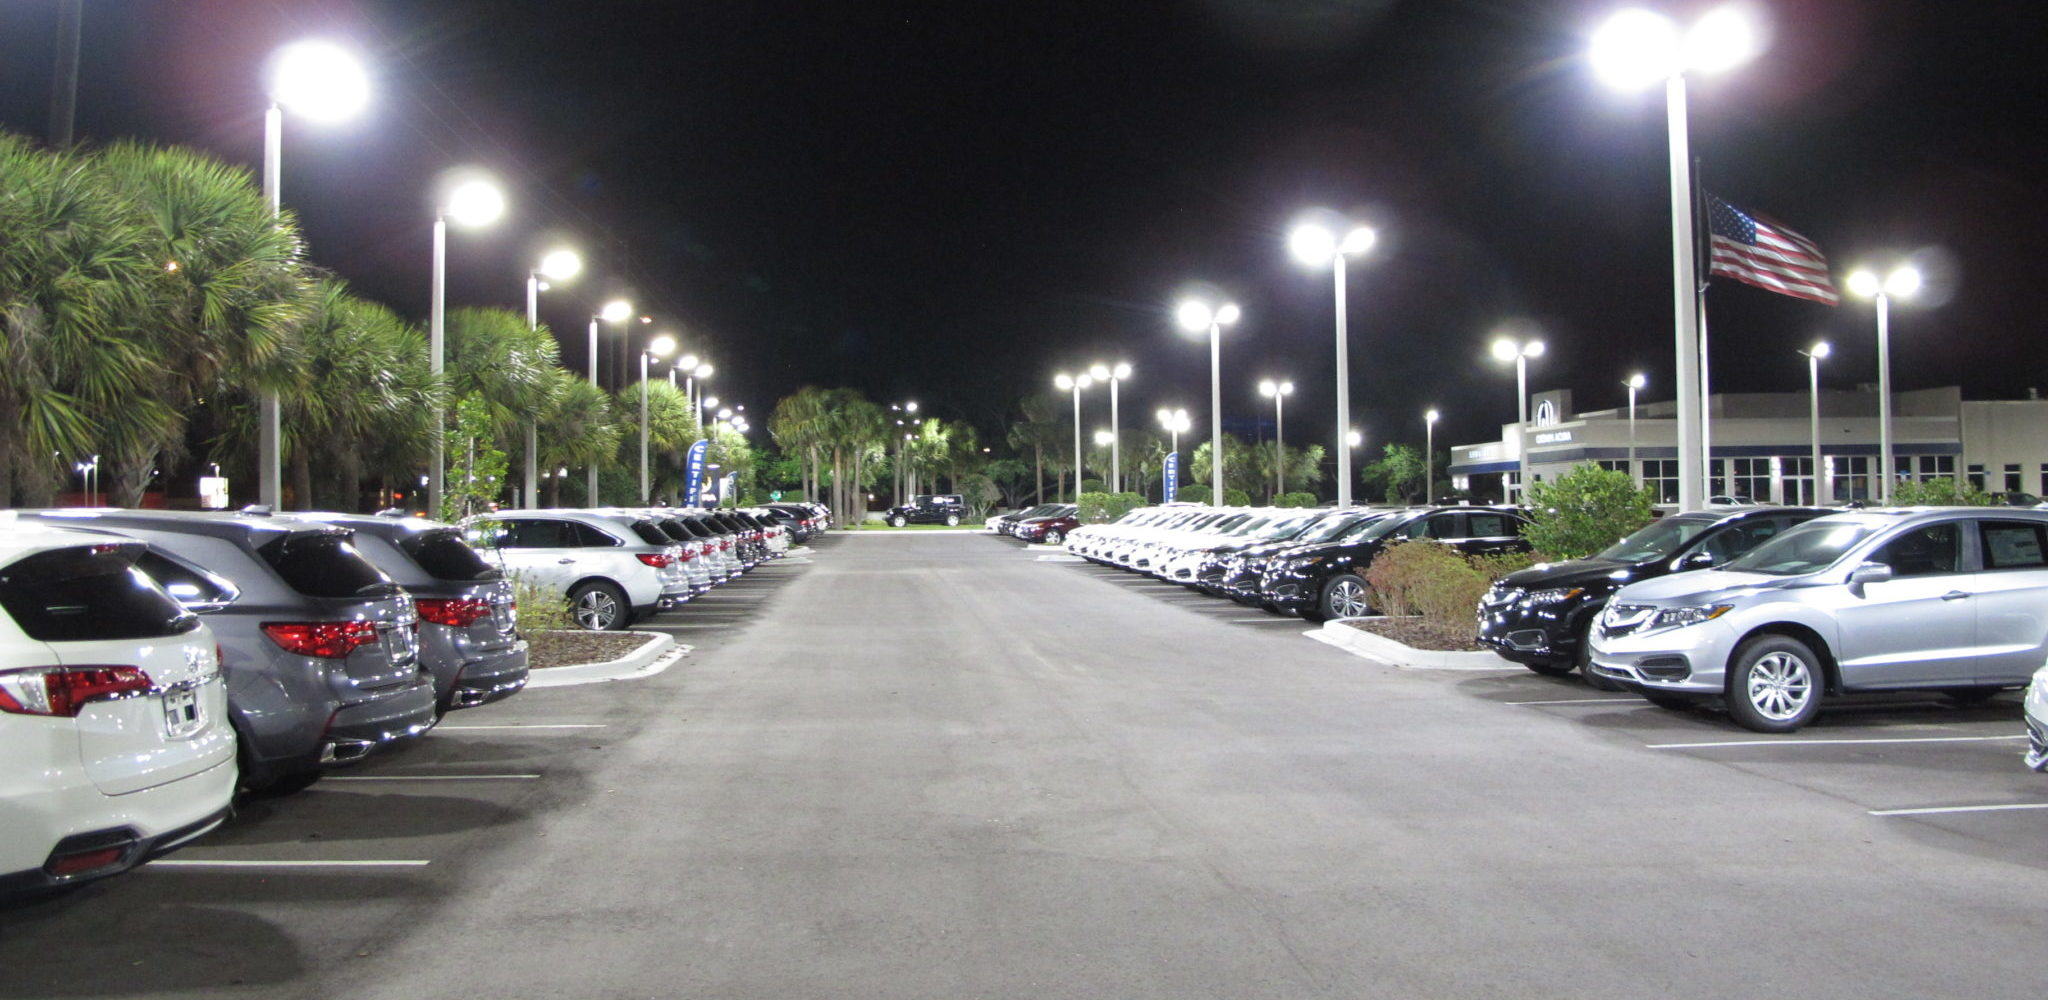 LED Lighting at Crown Acura Car Dealership in Clearwater, Florida. Car Dealership LED Lighting. LED Lighting Pinellas County. parking lot lighting for car dealership in Clearwater. Crown Acura Car Dealership in the Tampa Bay area in Florida where Arkon Power provided LED site lighting, photometric design, and Light poles.  Arkon worked with engineers to design the lighting layout at this Clearwater based and ensure it would meet all foot candle requirements.